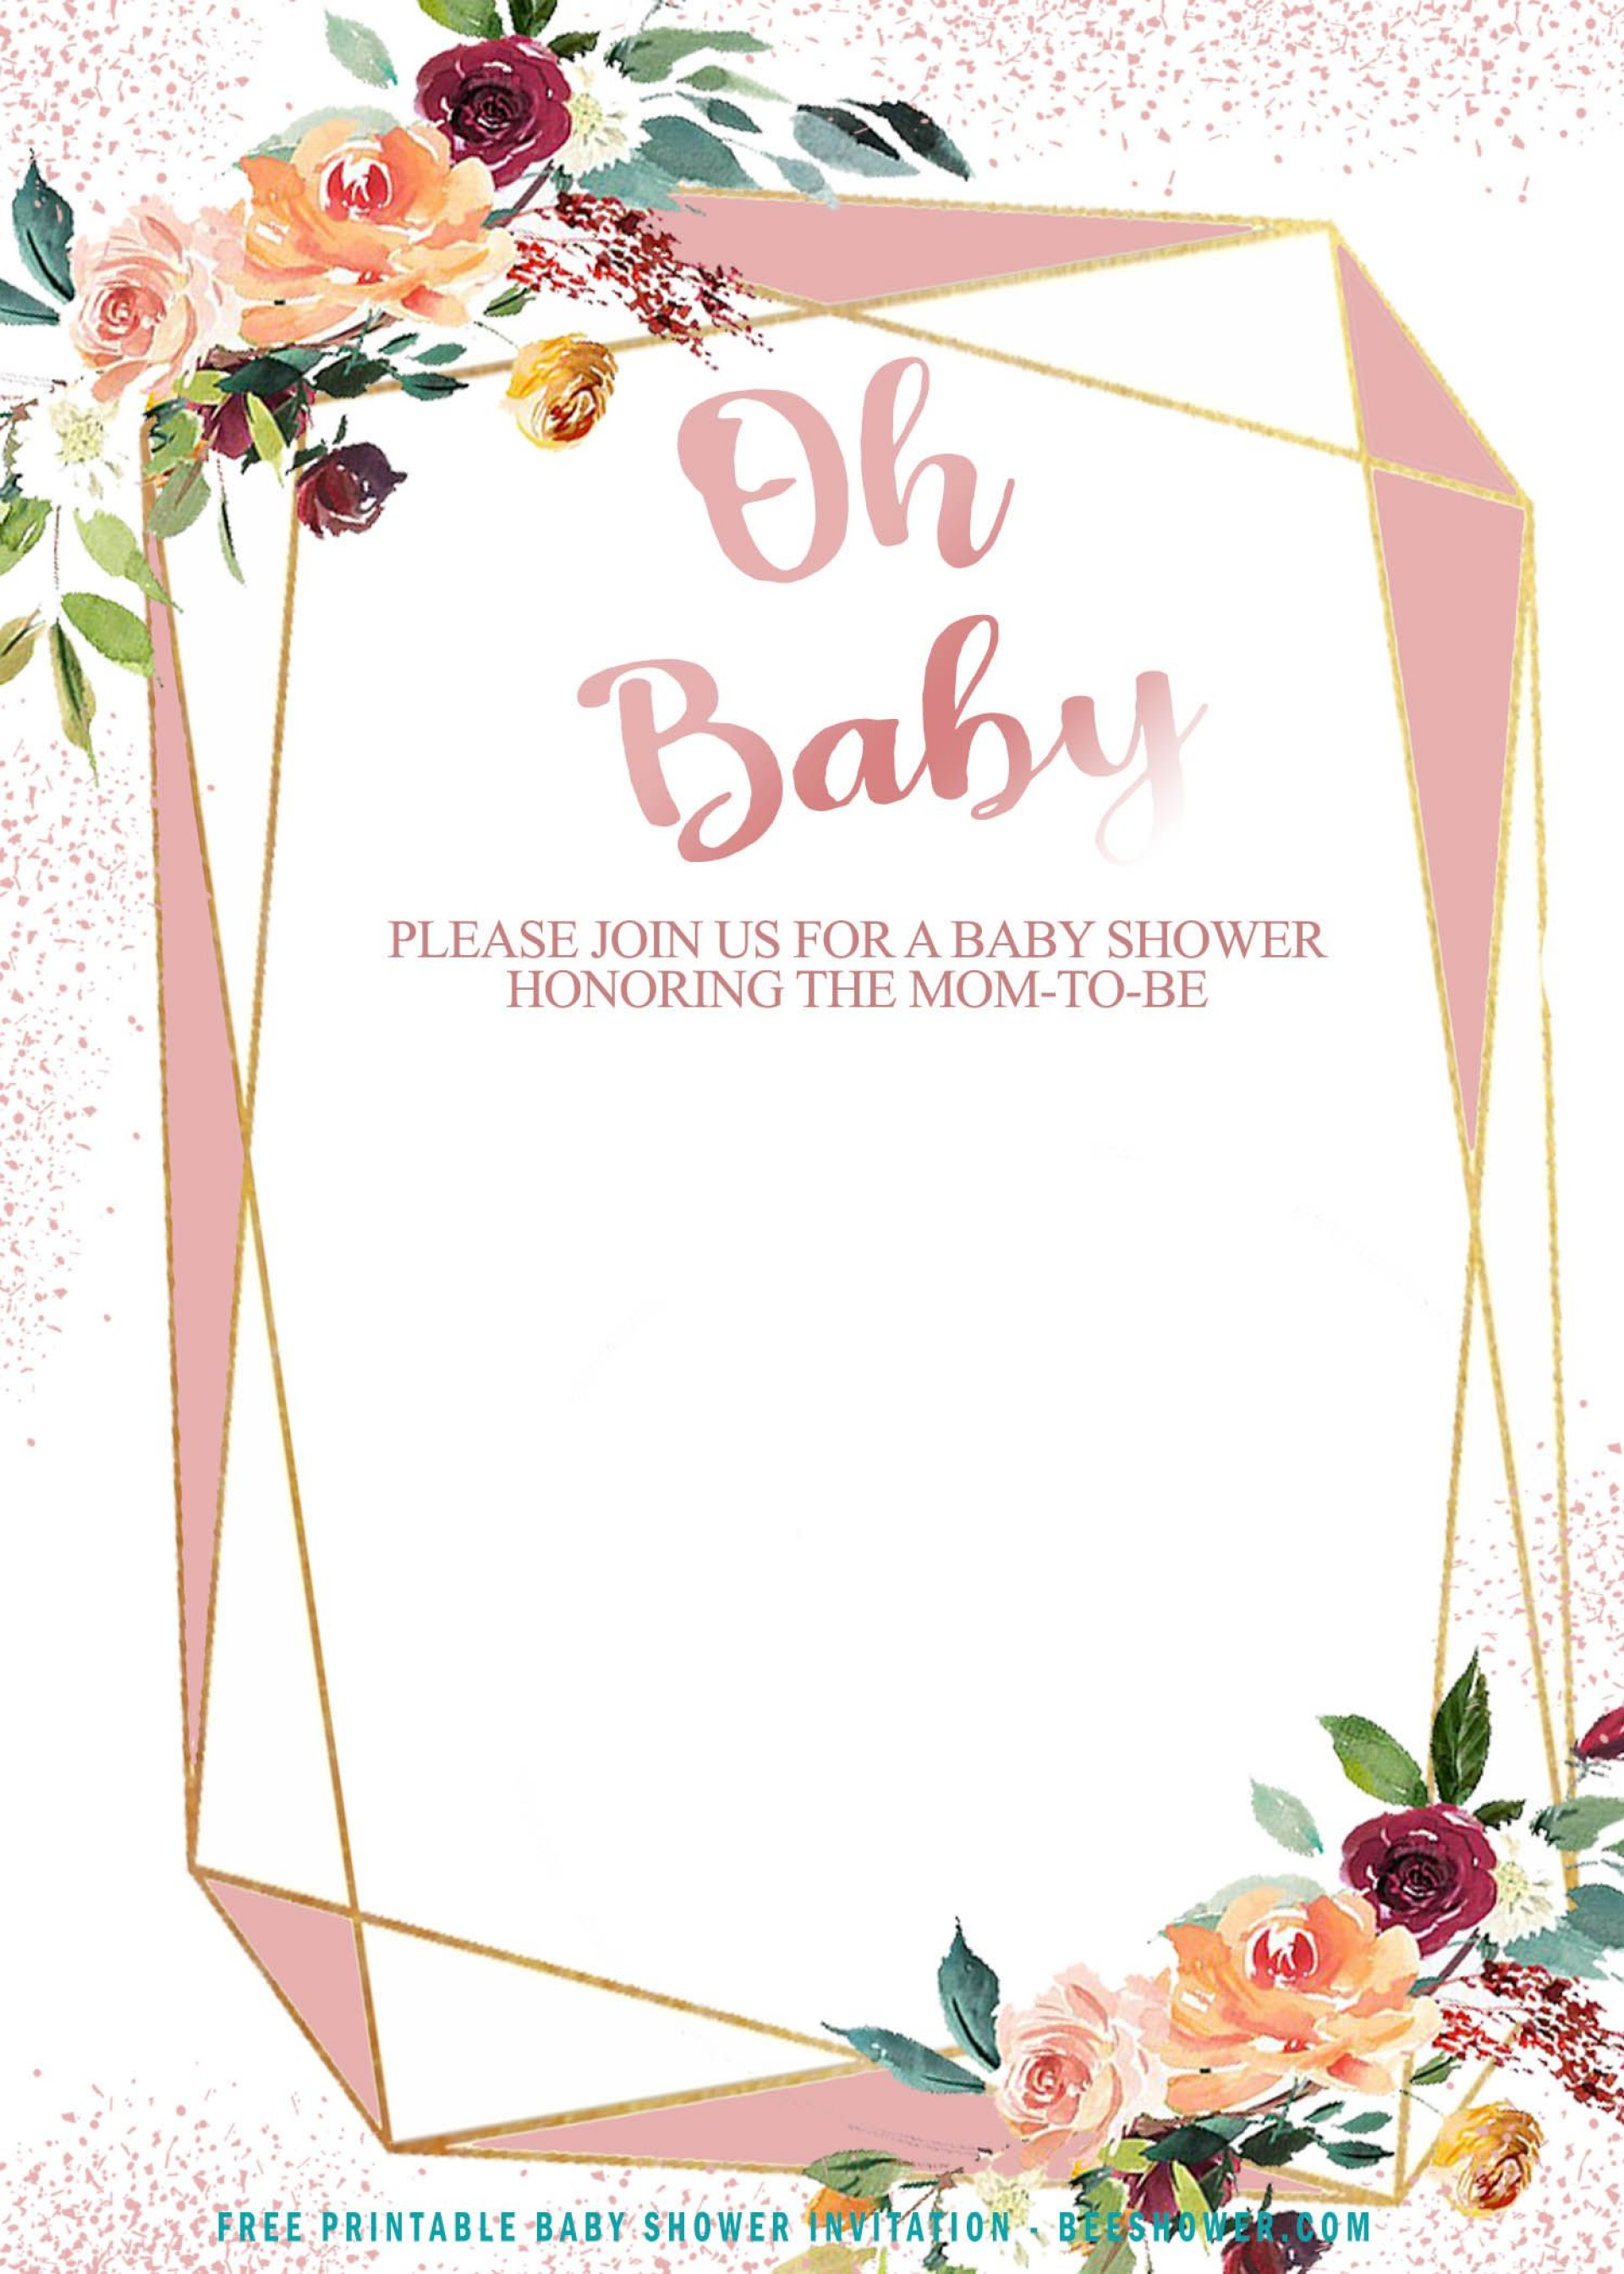 009 Impressive Baby Shower Invitation Template Word Idea  Office Wording Sample Work Download1920